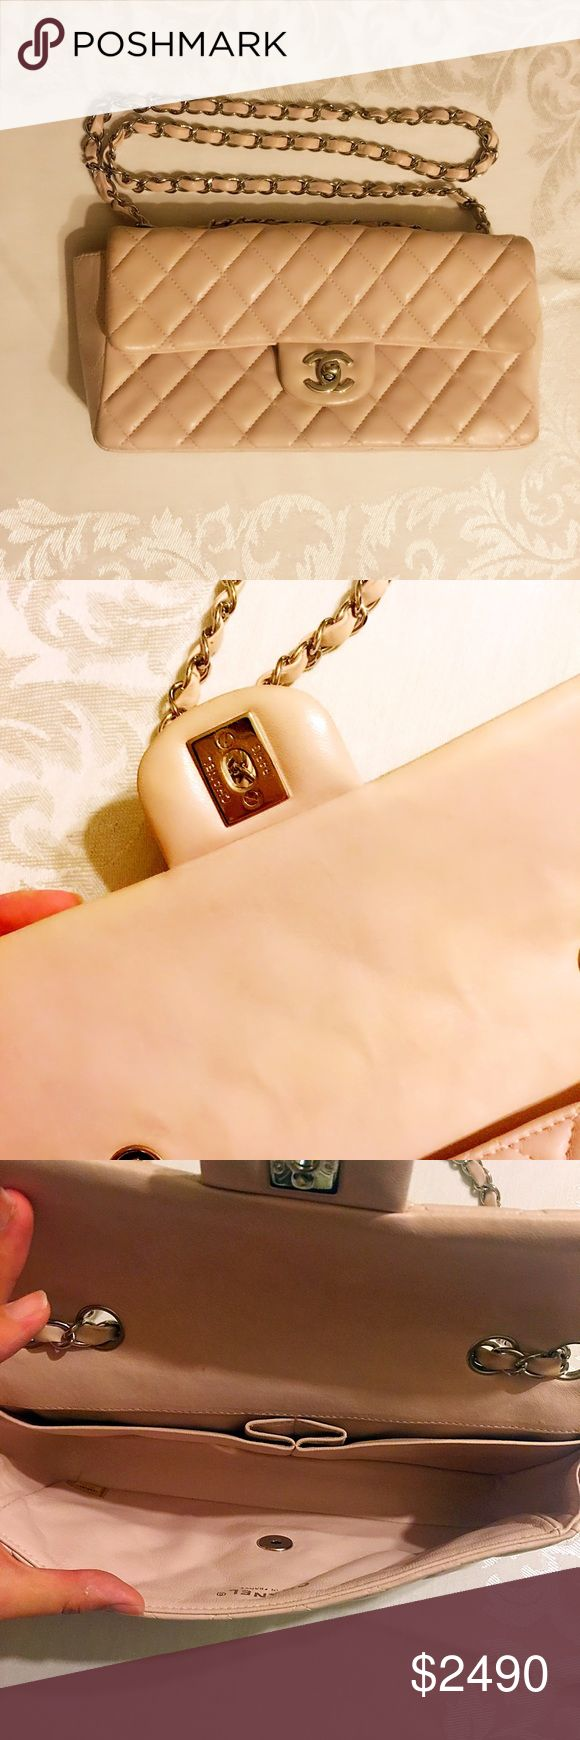 Pink Beige Chanel Single Flap lamb leather bag Sales told me it's light pink when I bought it. To be honest, it looks more like beige than pink. In good condition with normal signs of wear. CHANEL Bags Shoulder Bags